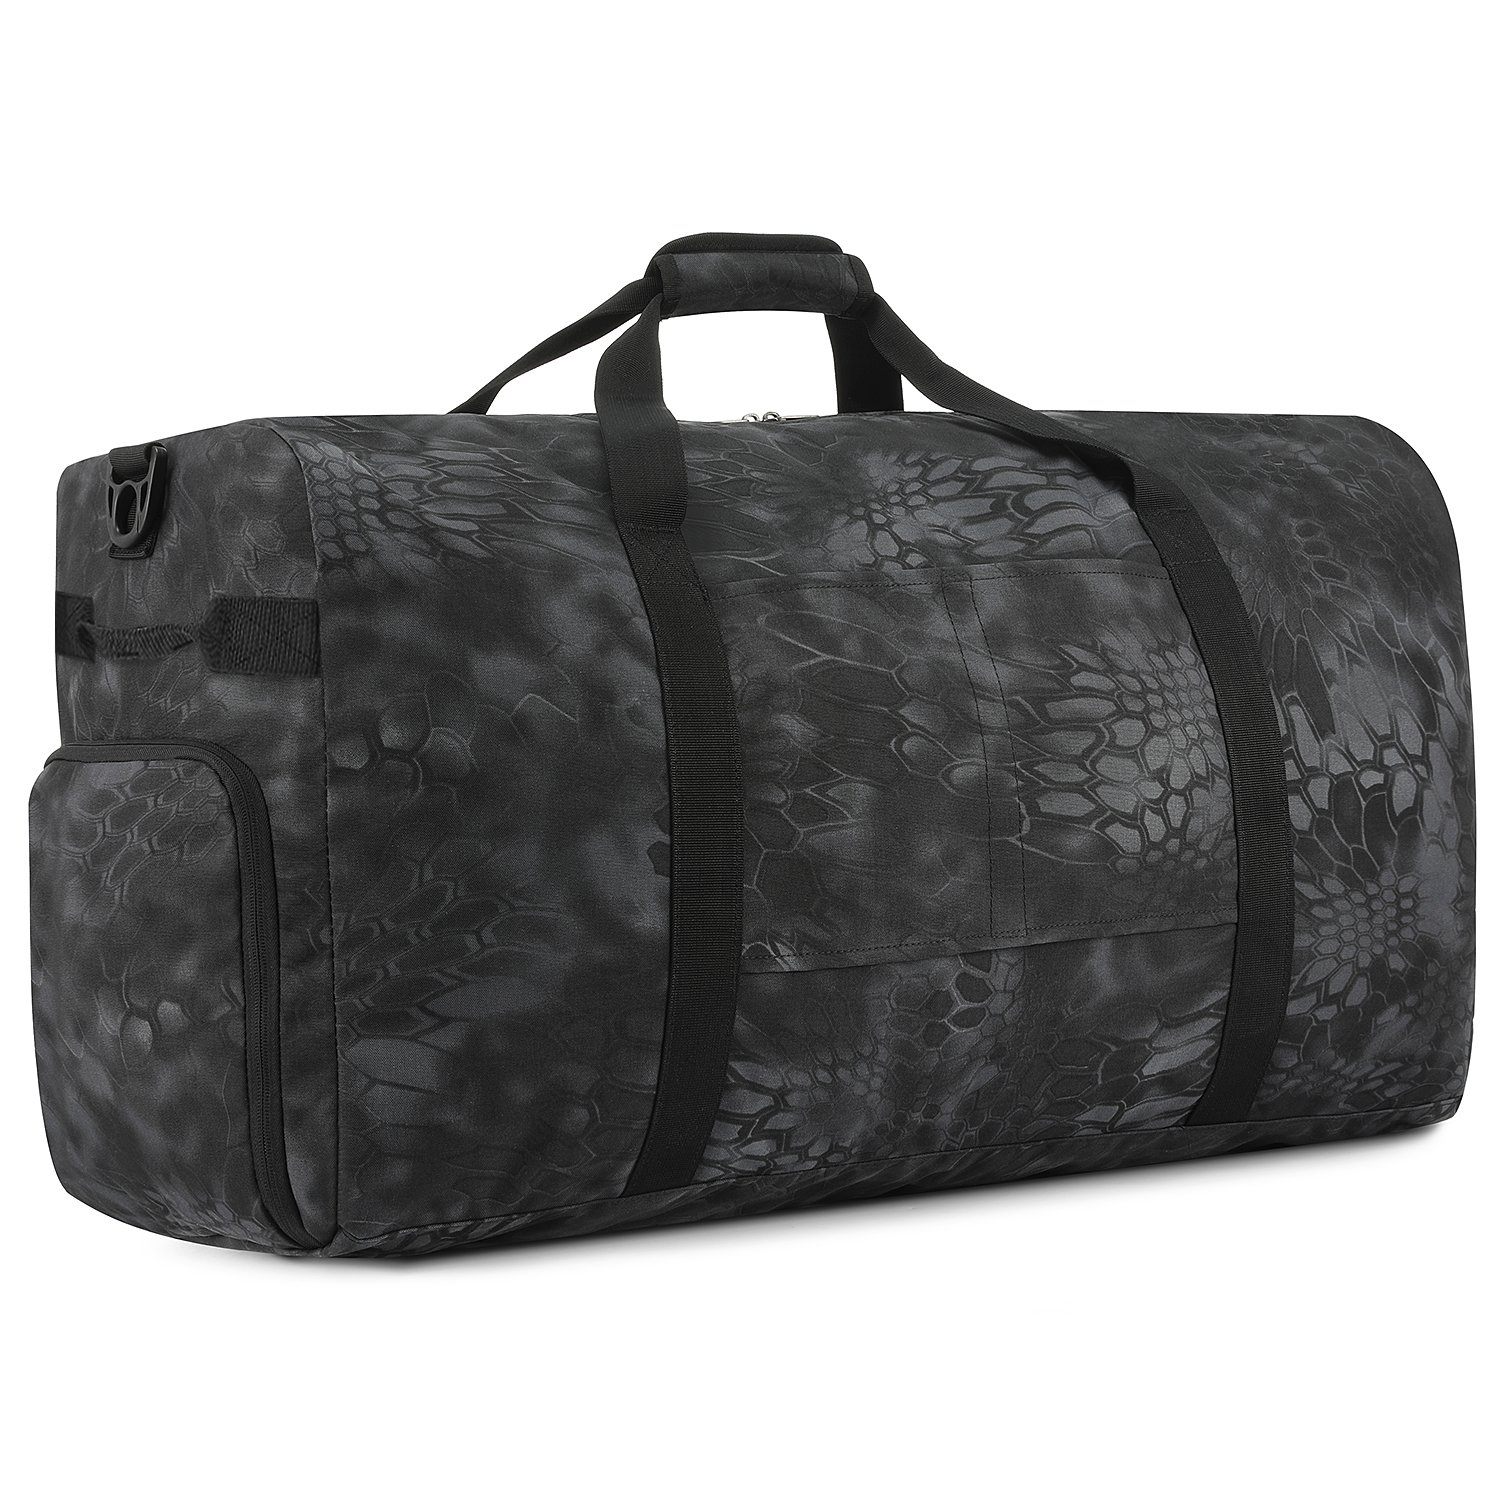 Gonex 100L Foldable Travel Duffle Bag Extra Large Luggage Duffel 12 Color Choices